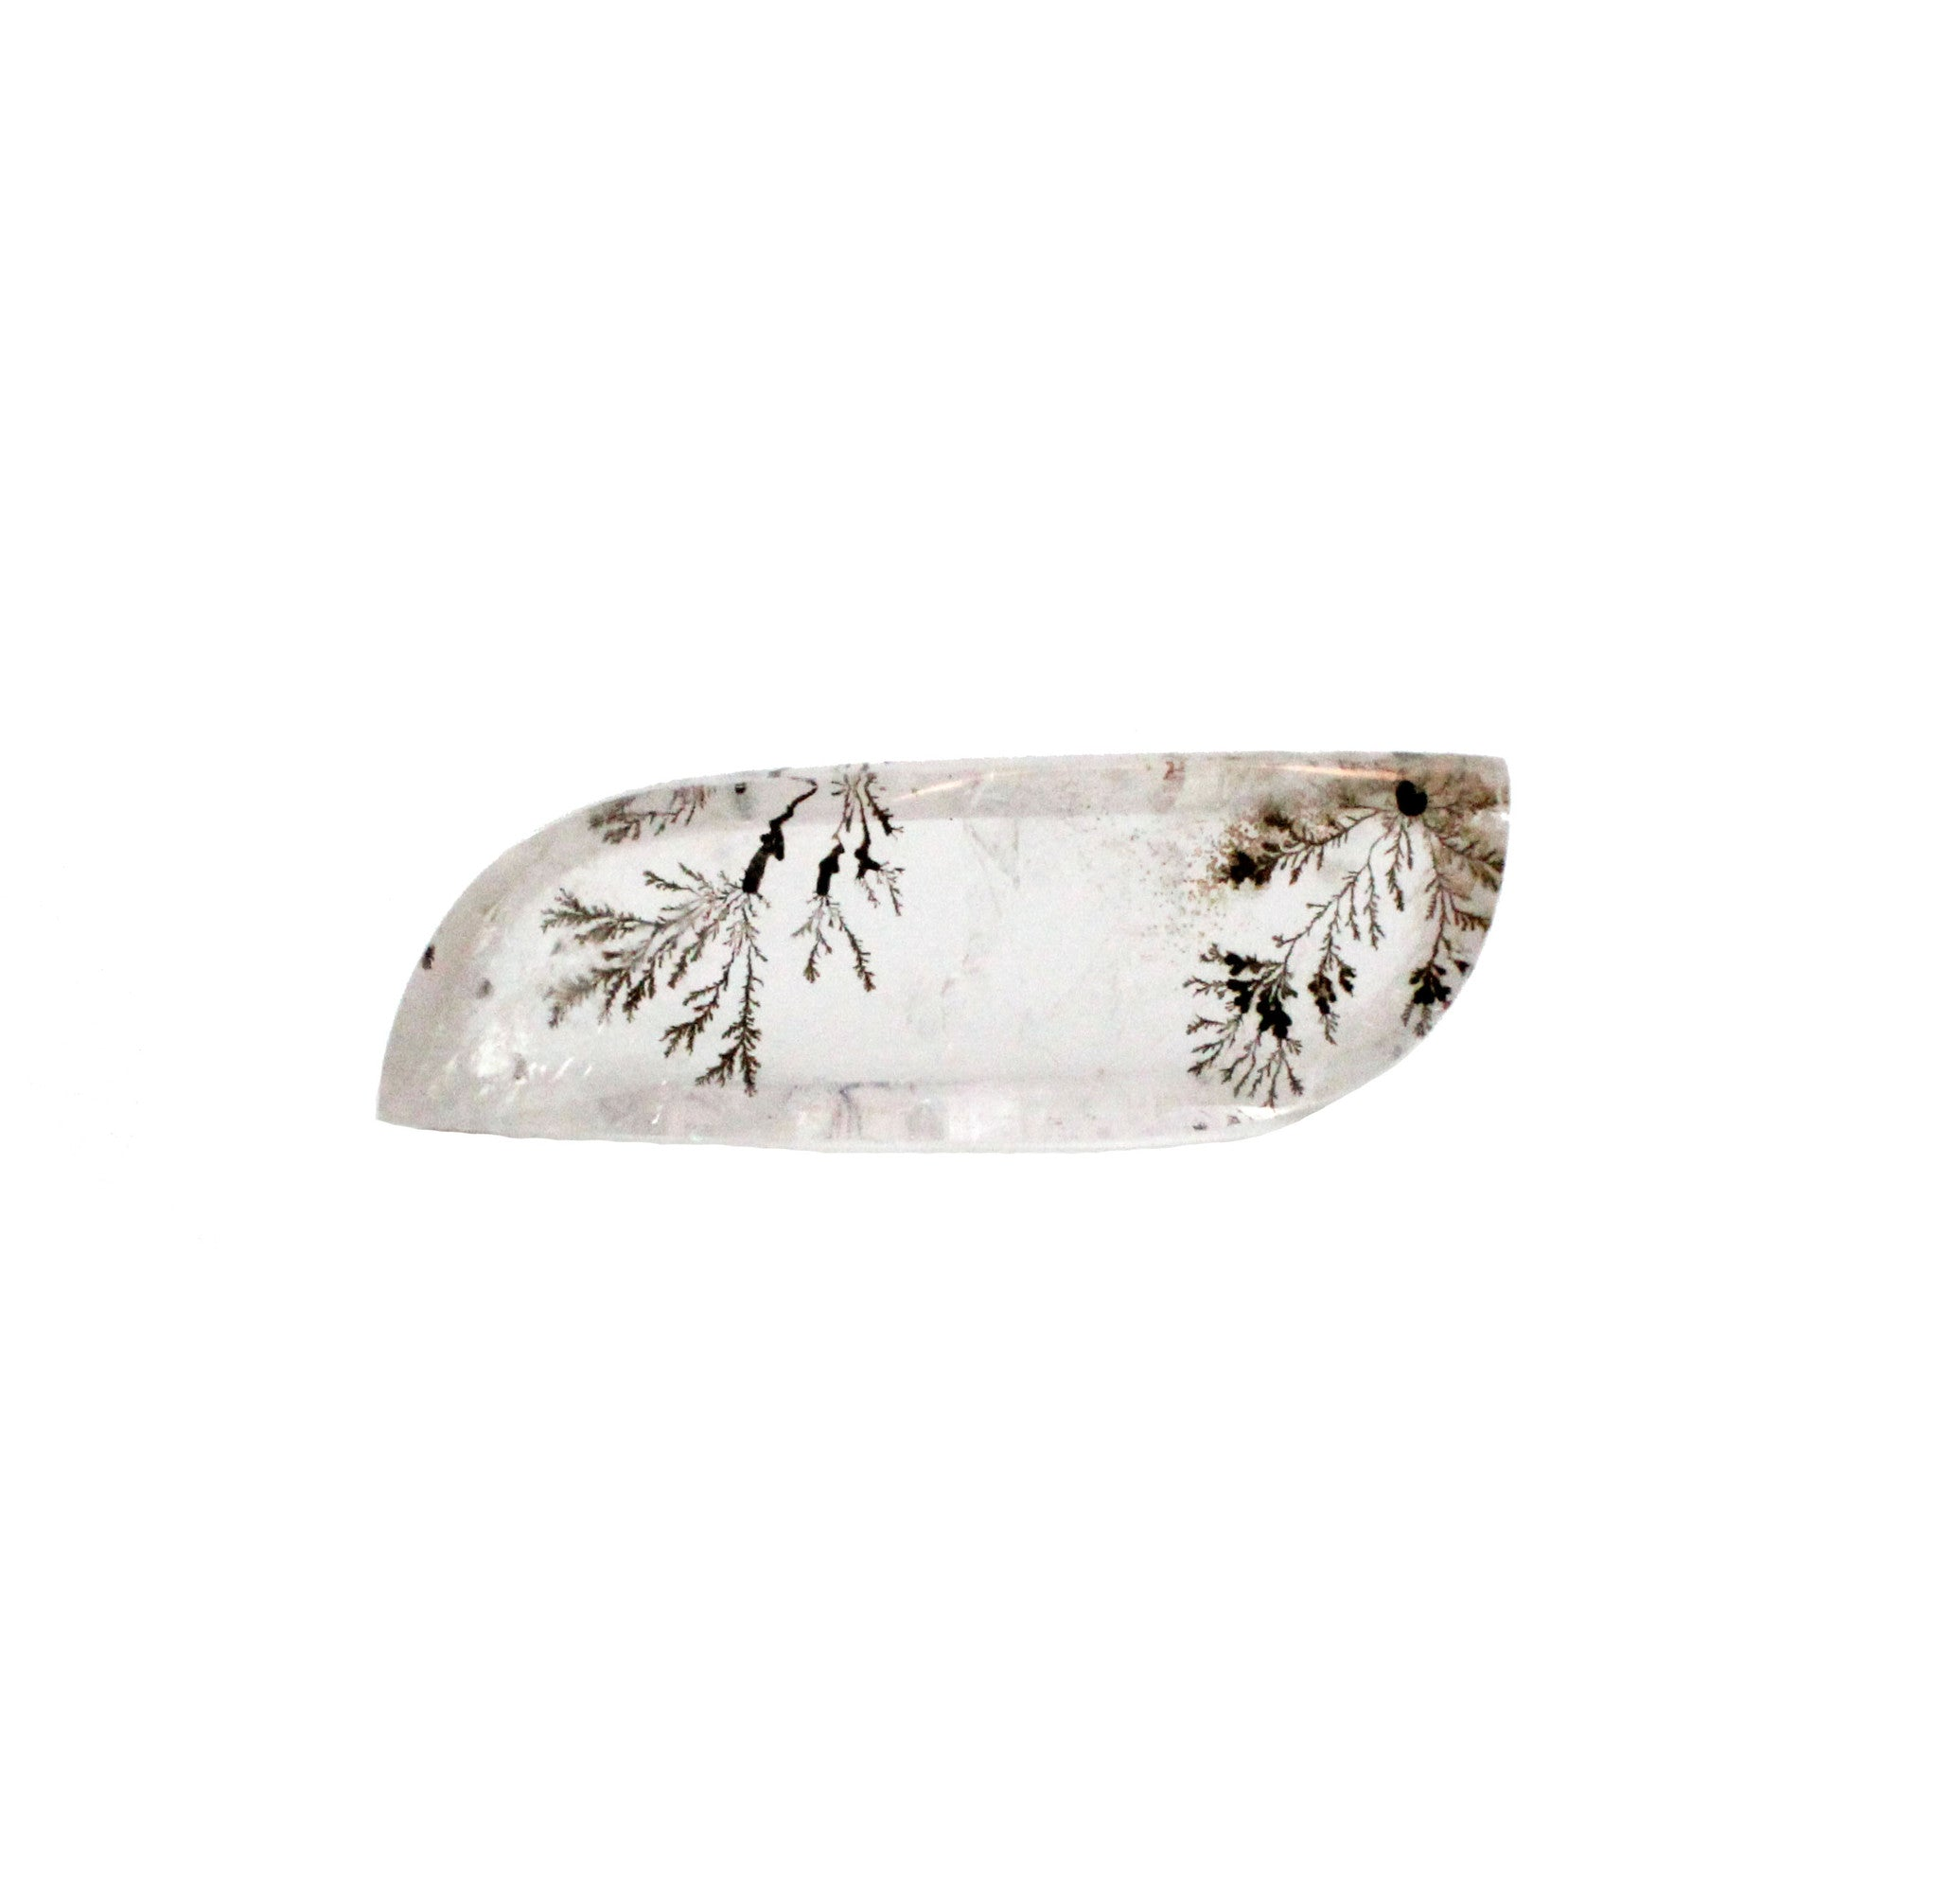 Dendritic Quartz fancy buff top cut cabochon 58.79 carat gemstone - Make your own custom jewelry - Sarah Hughes - 5